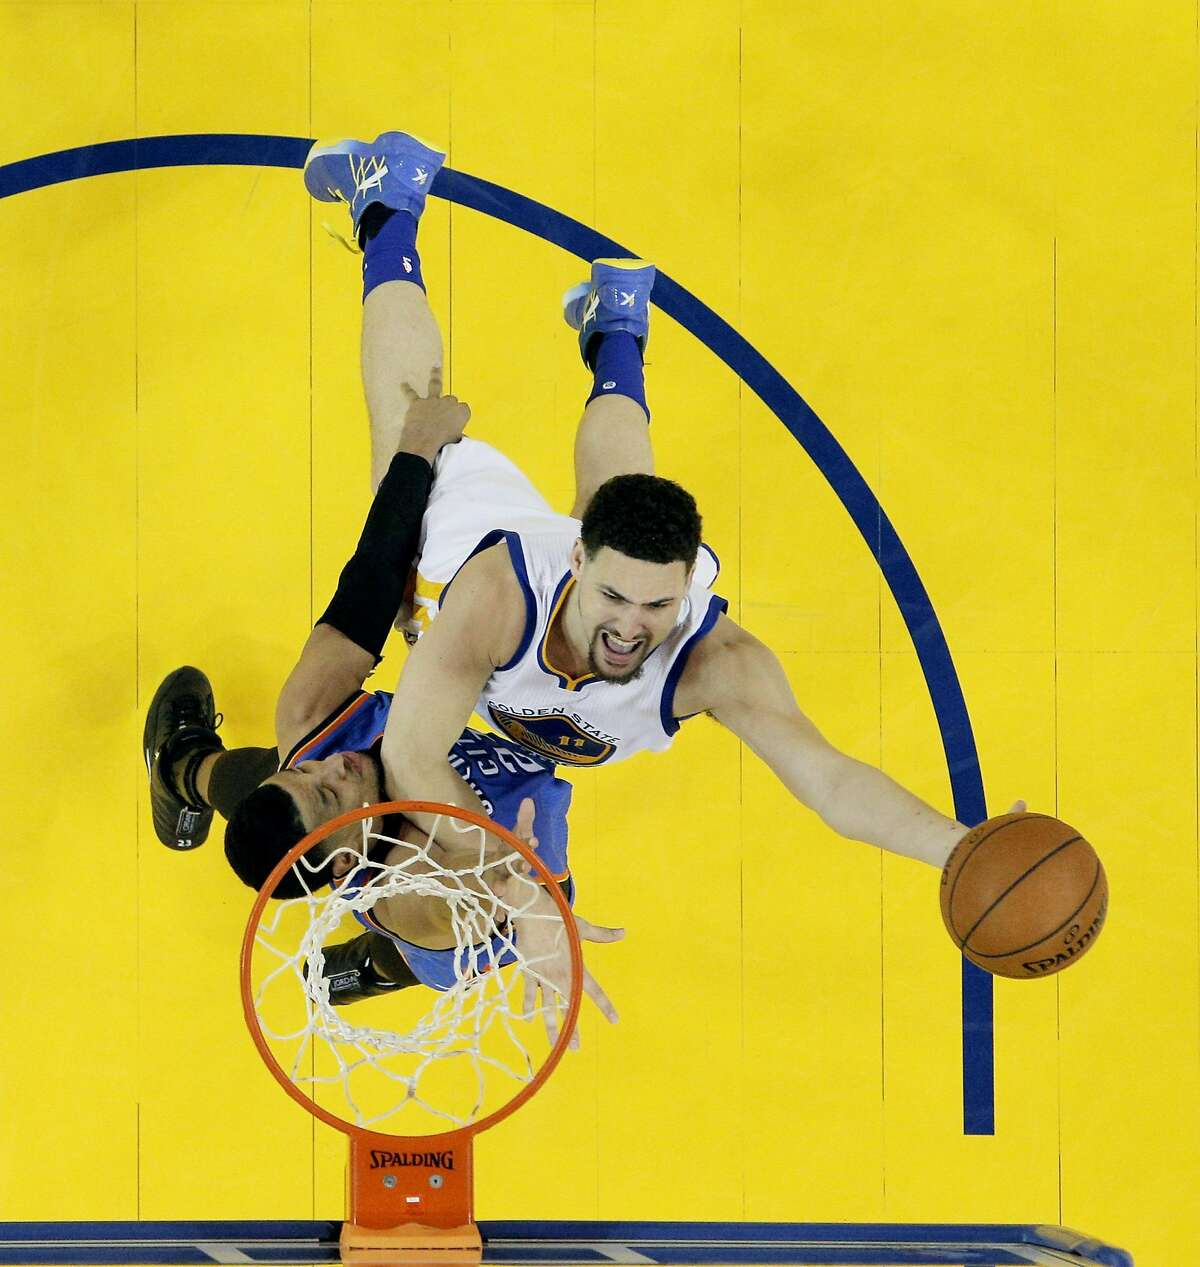 SHOOTING GUARD: He won't tell you about it, but Klay Thompson has been the most consistent player in the NBA playoffs and possibly the best. He won matchups with James Harden, Damian Lillard and Russell Westbrook, and he could complete quite a run against Irving.